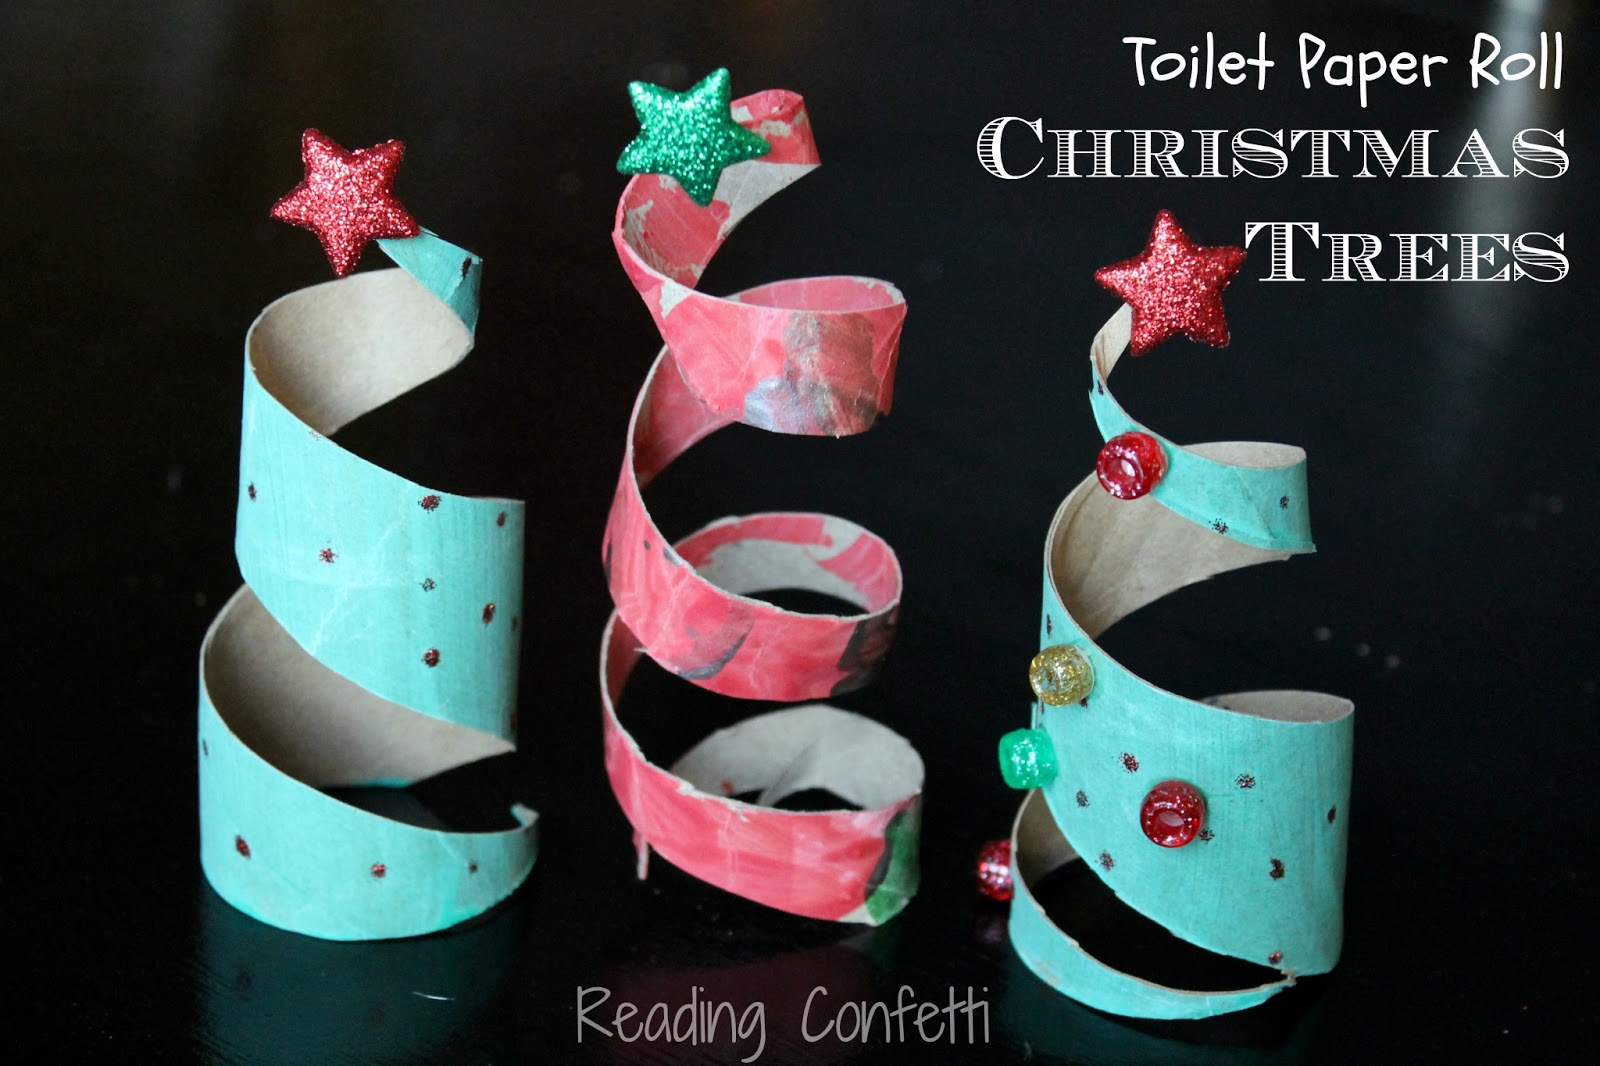 Toilet Paper Roll Christmas Trees ~ Reading Confetti ~ 043503_Christmas Decoration Ideas Using Toilet Paper Rolls